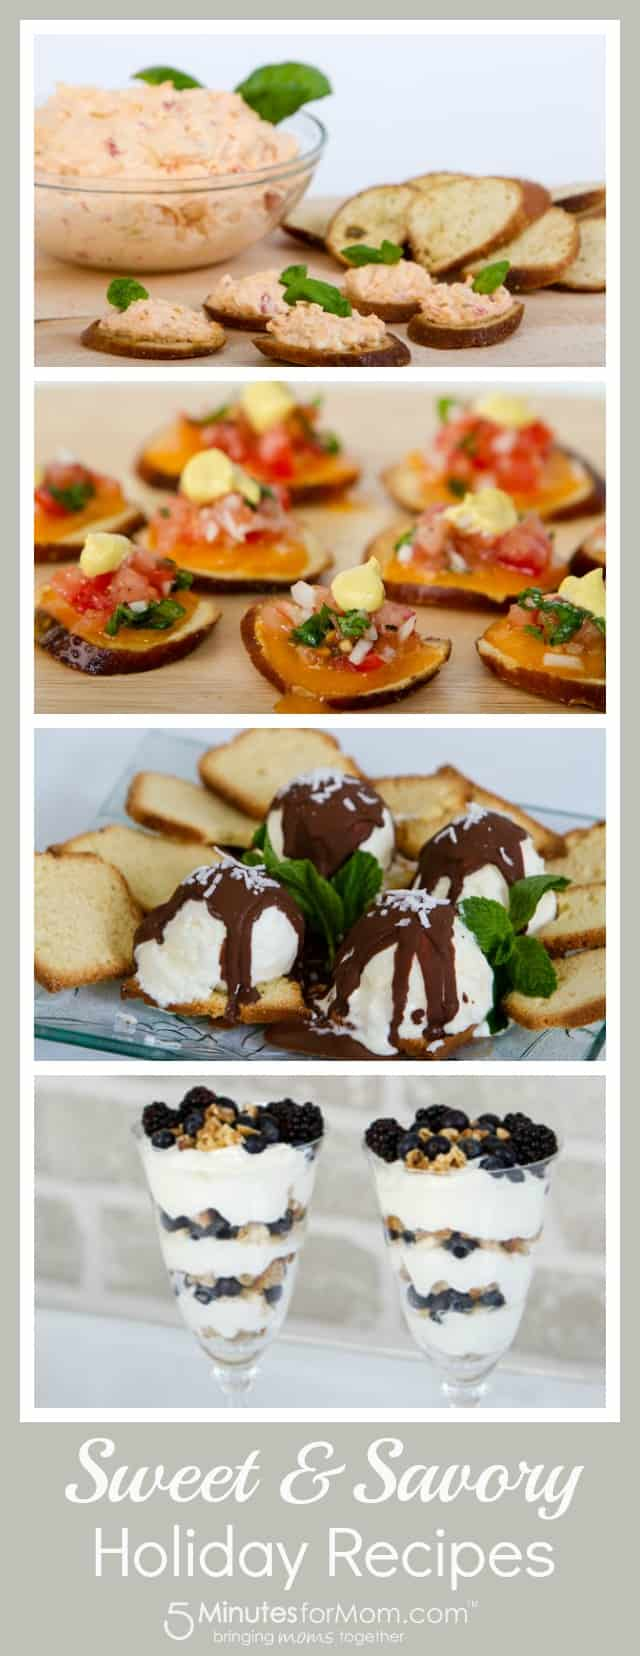 Sweet and savory holiday recipes